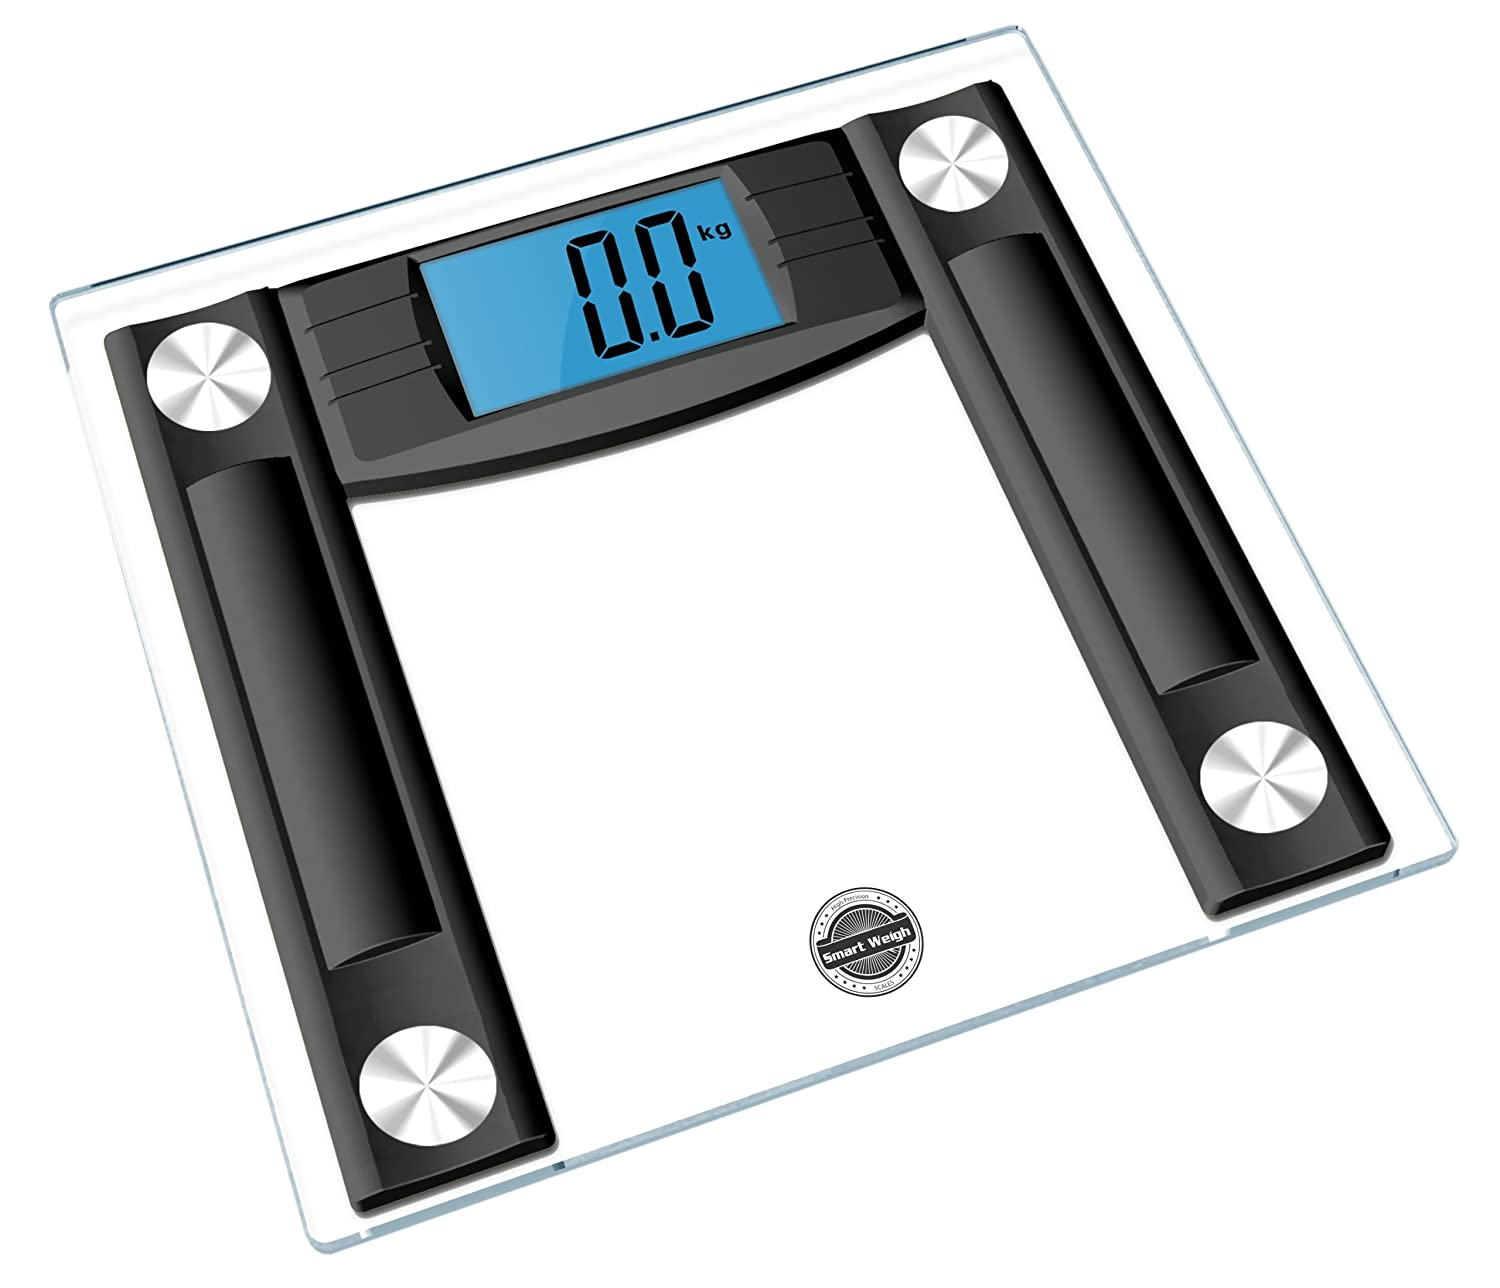 Smart Weigh Dvs400 Digital Glass Bathroom Scale Best